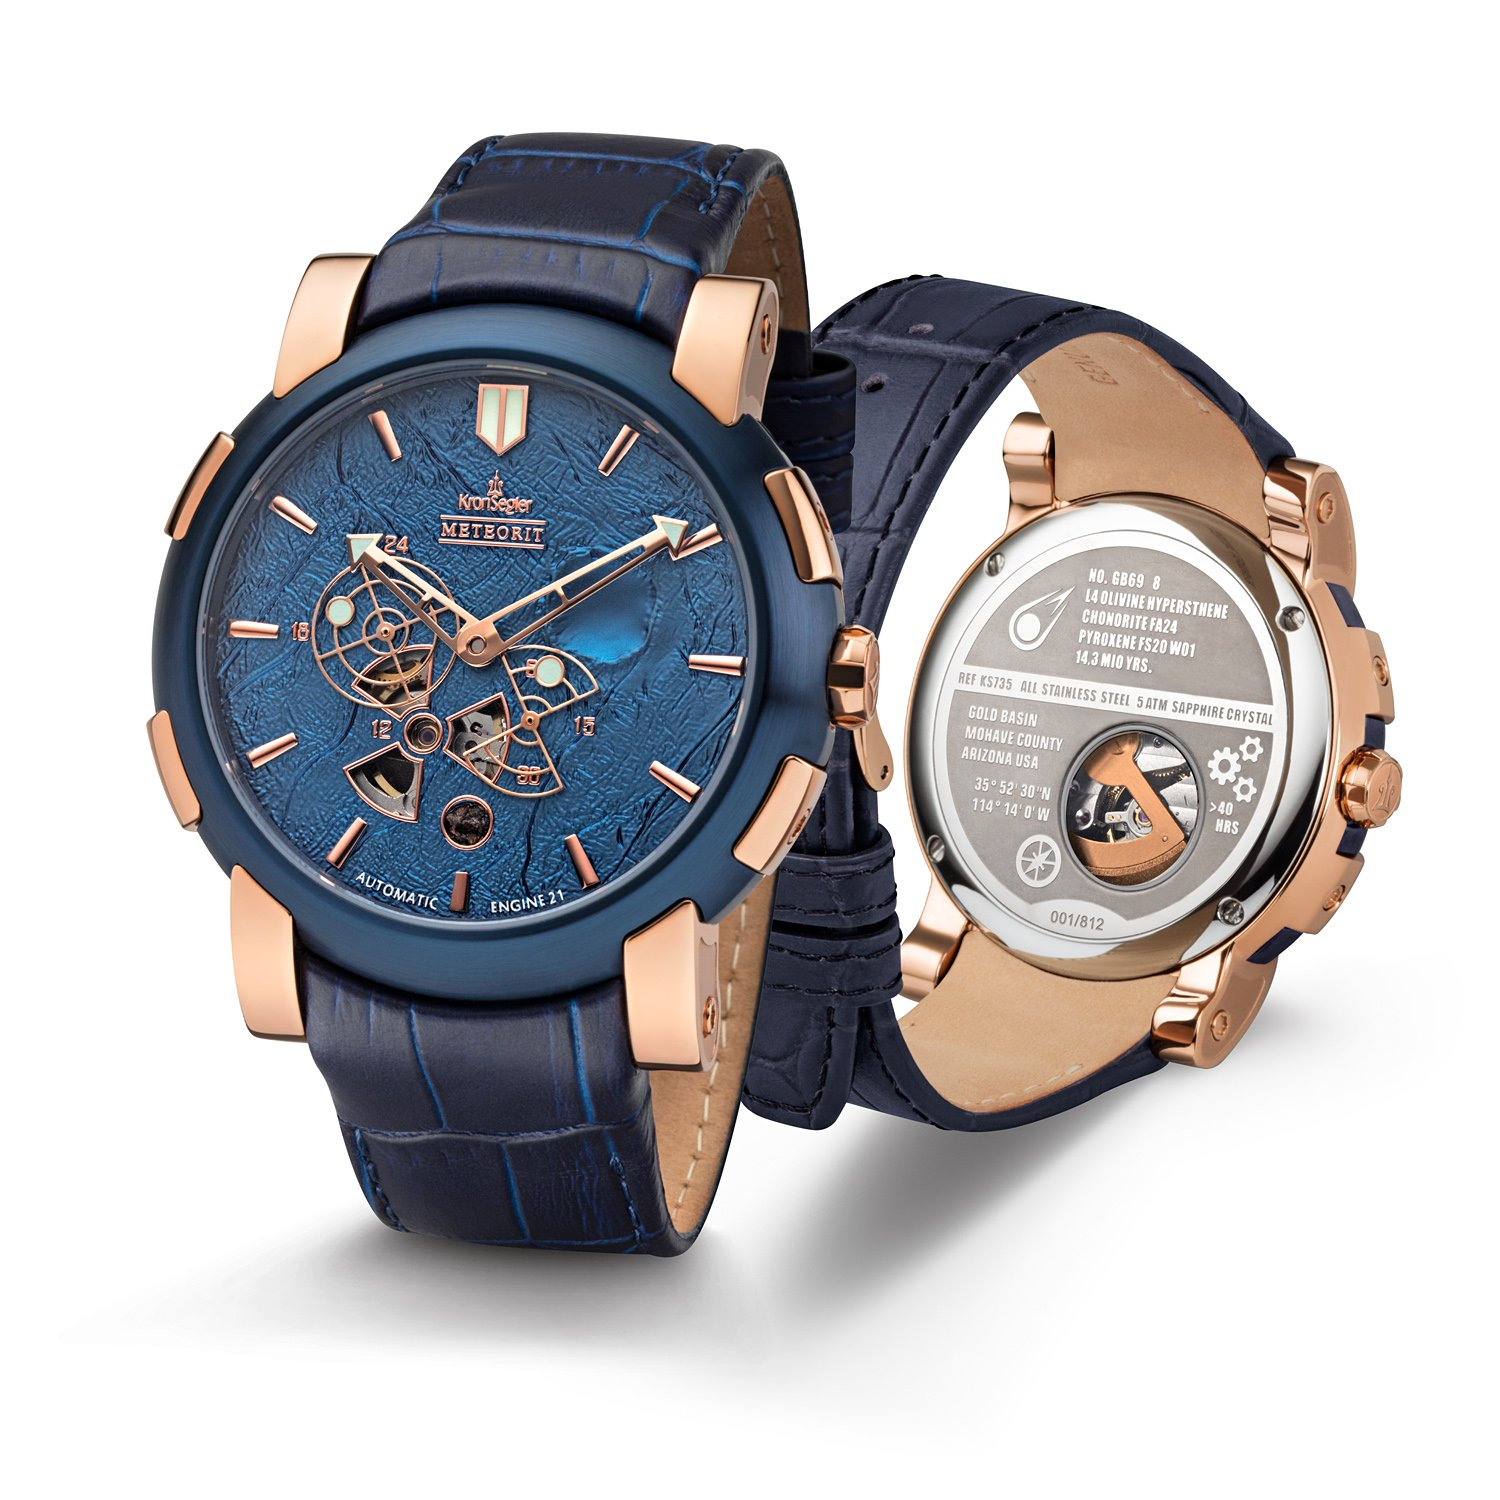 Amazon.com: Kronsegler Meteorit Automatic Watch Rosegold-Blue/Blue Limited with Meteorite Stones: Watches